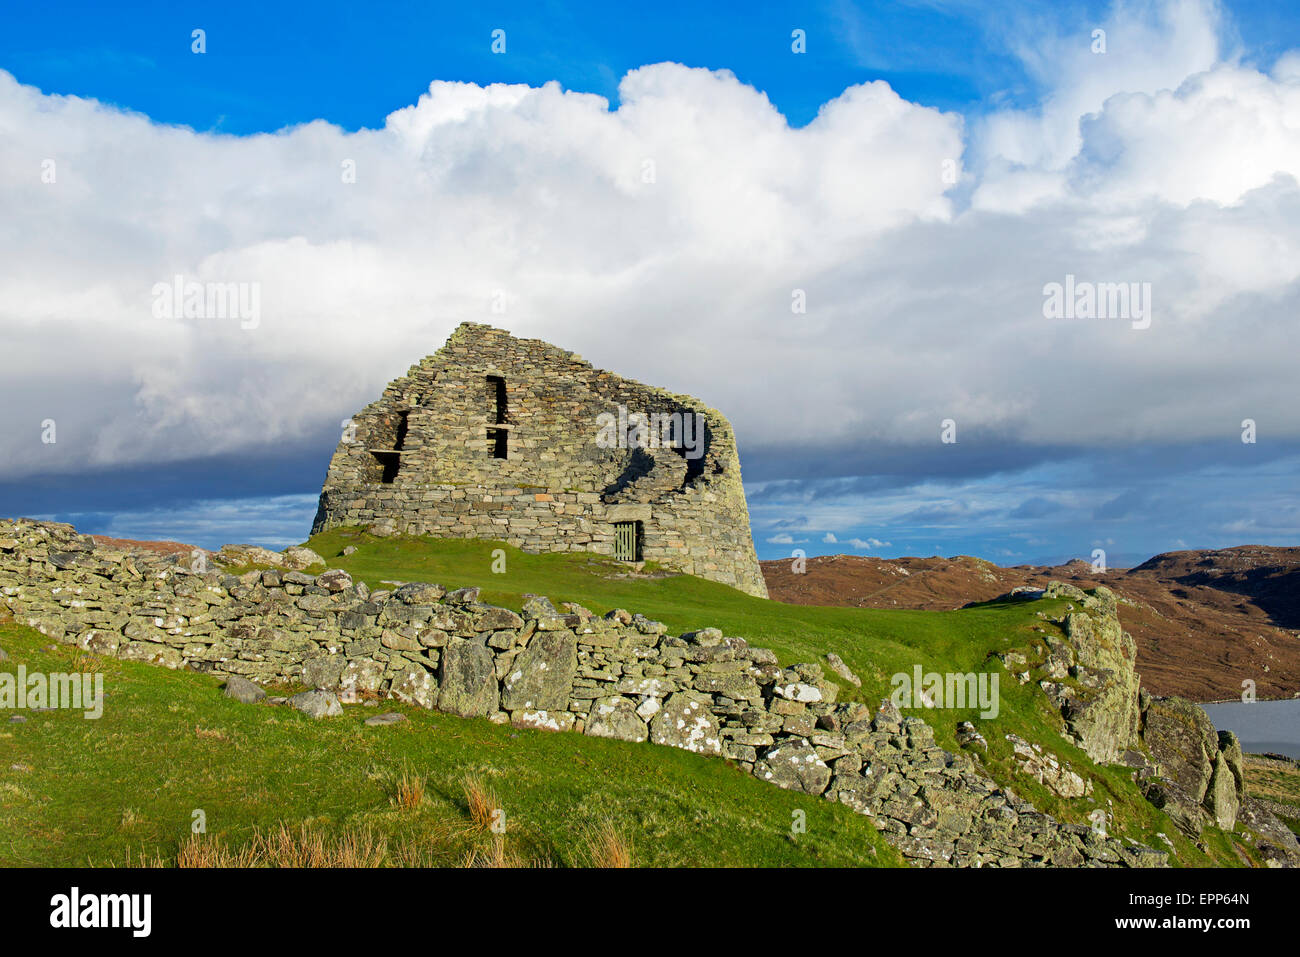 Dun Carloway Broch, Isle of Lewis, Outer Hebrides, Scotland - Stock Image